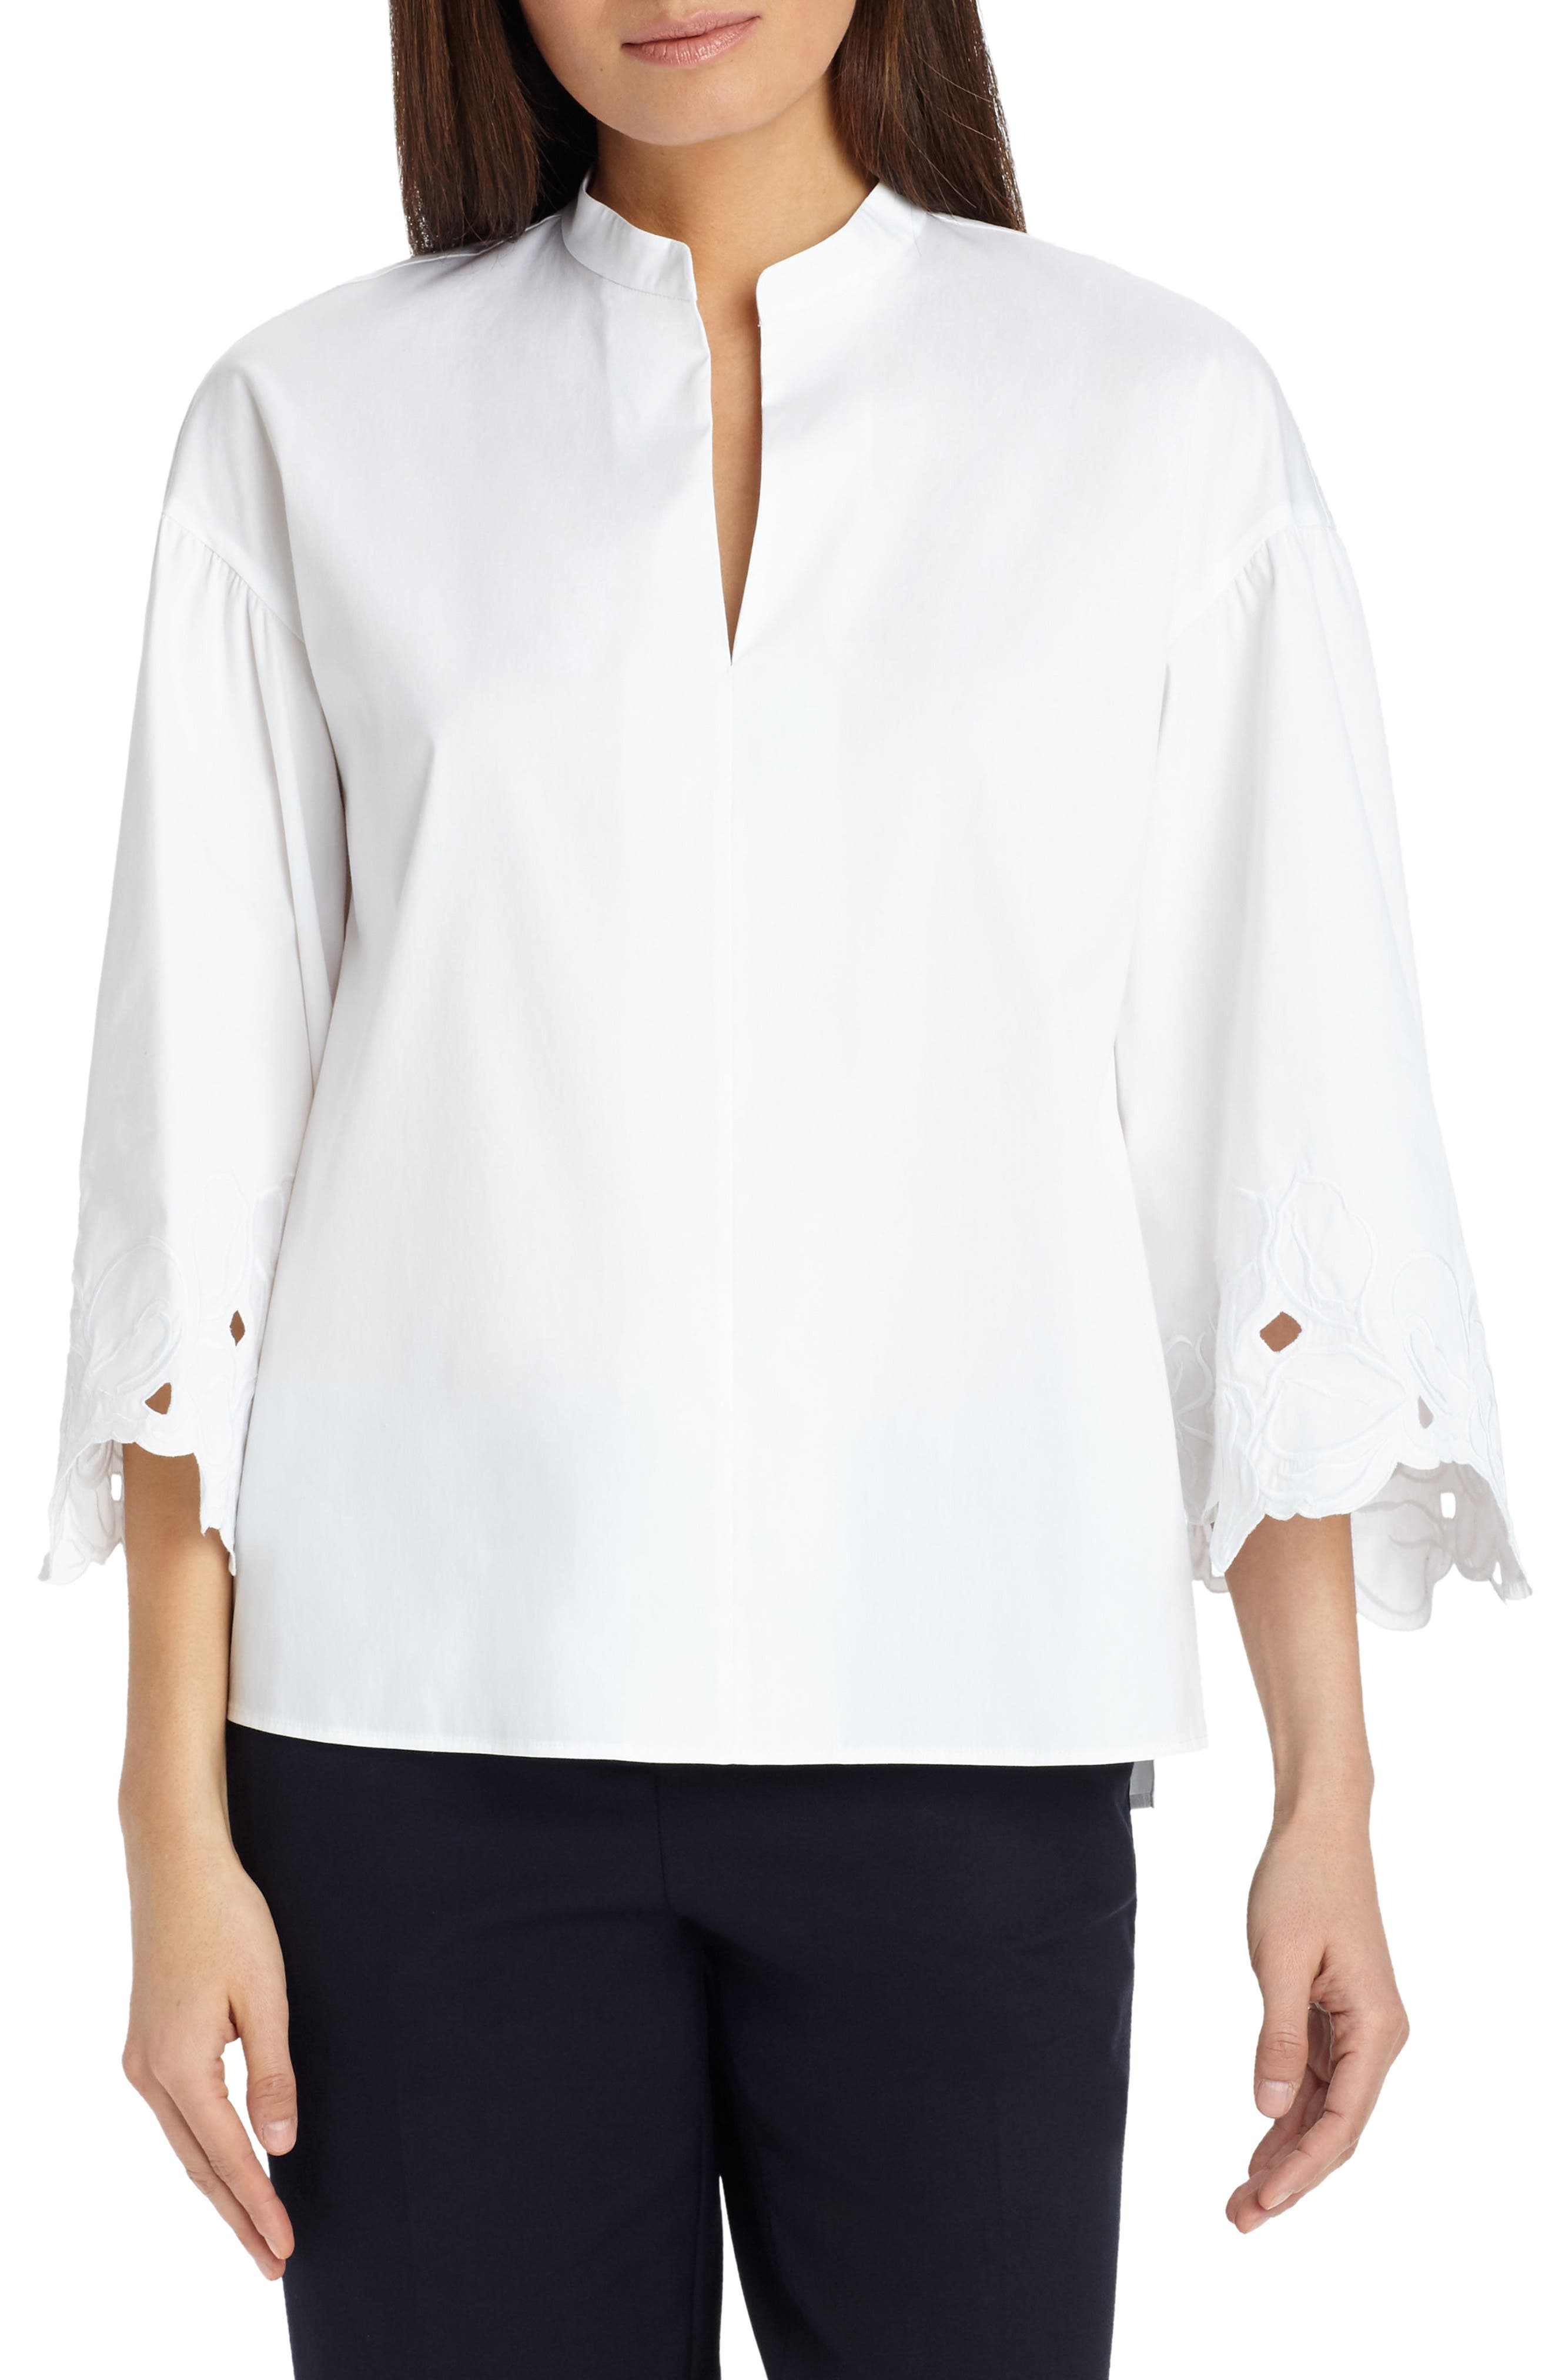 Carla Embroidered Blouse,                         Main,                         color, White